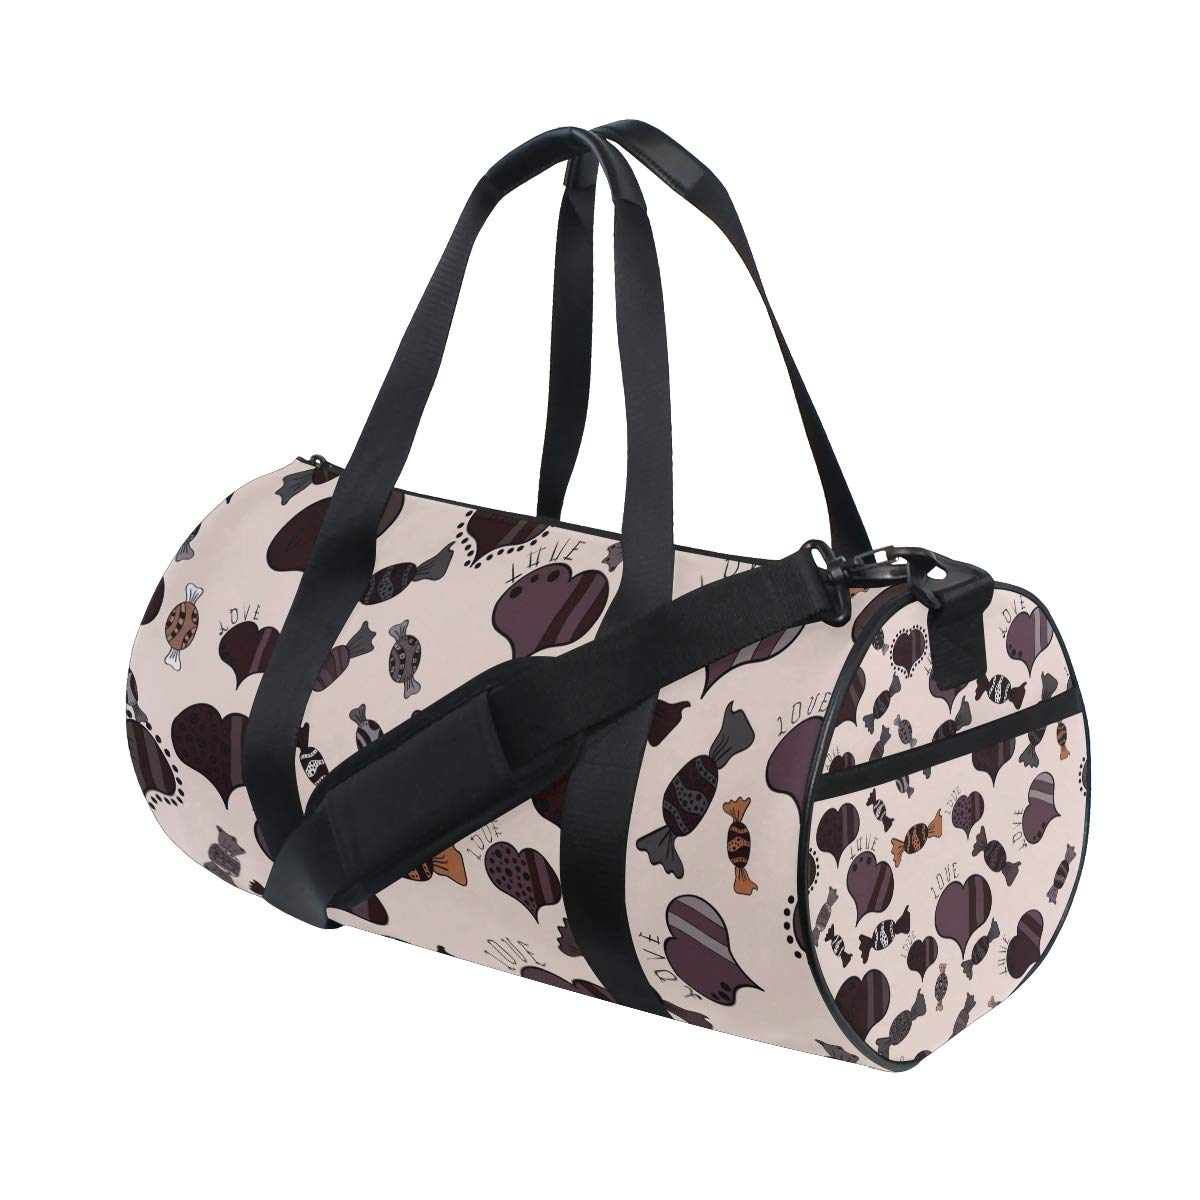 AHOMY Christmas Candy Love Heart Sports Gym Bag Travel Overnight Duffel Bag for Men and Women